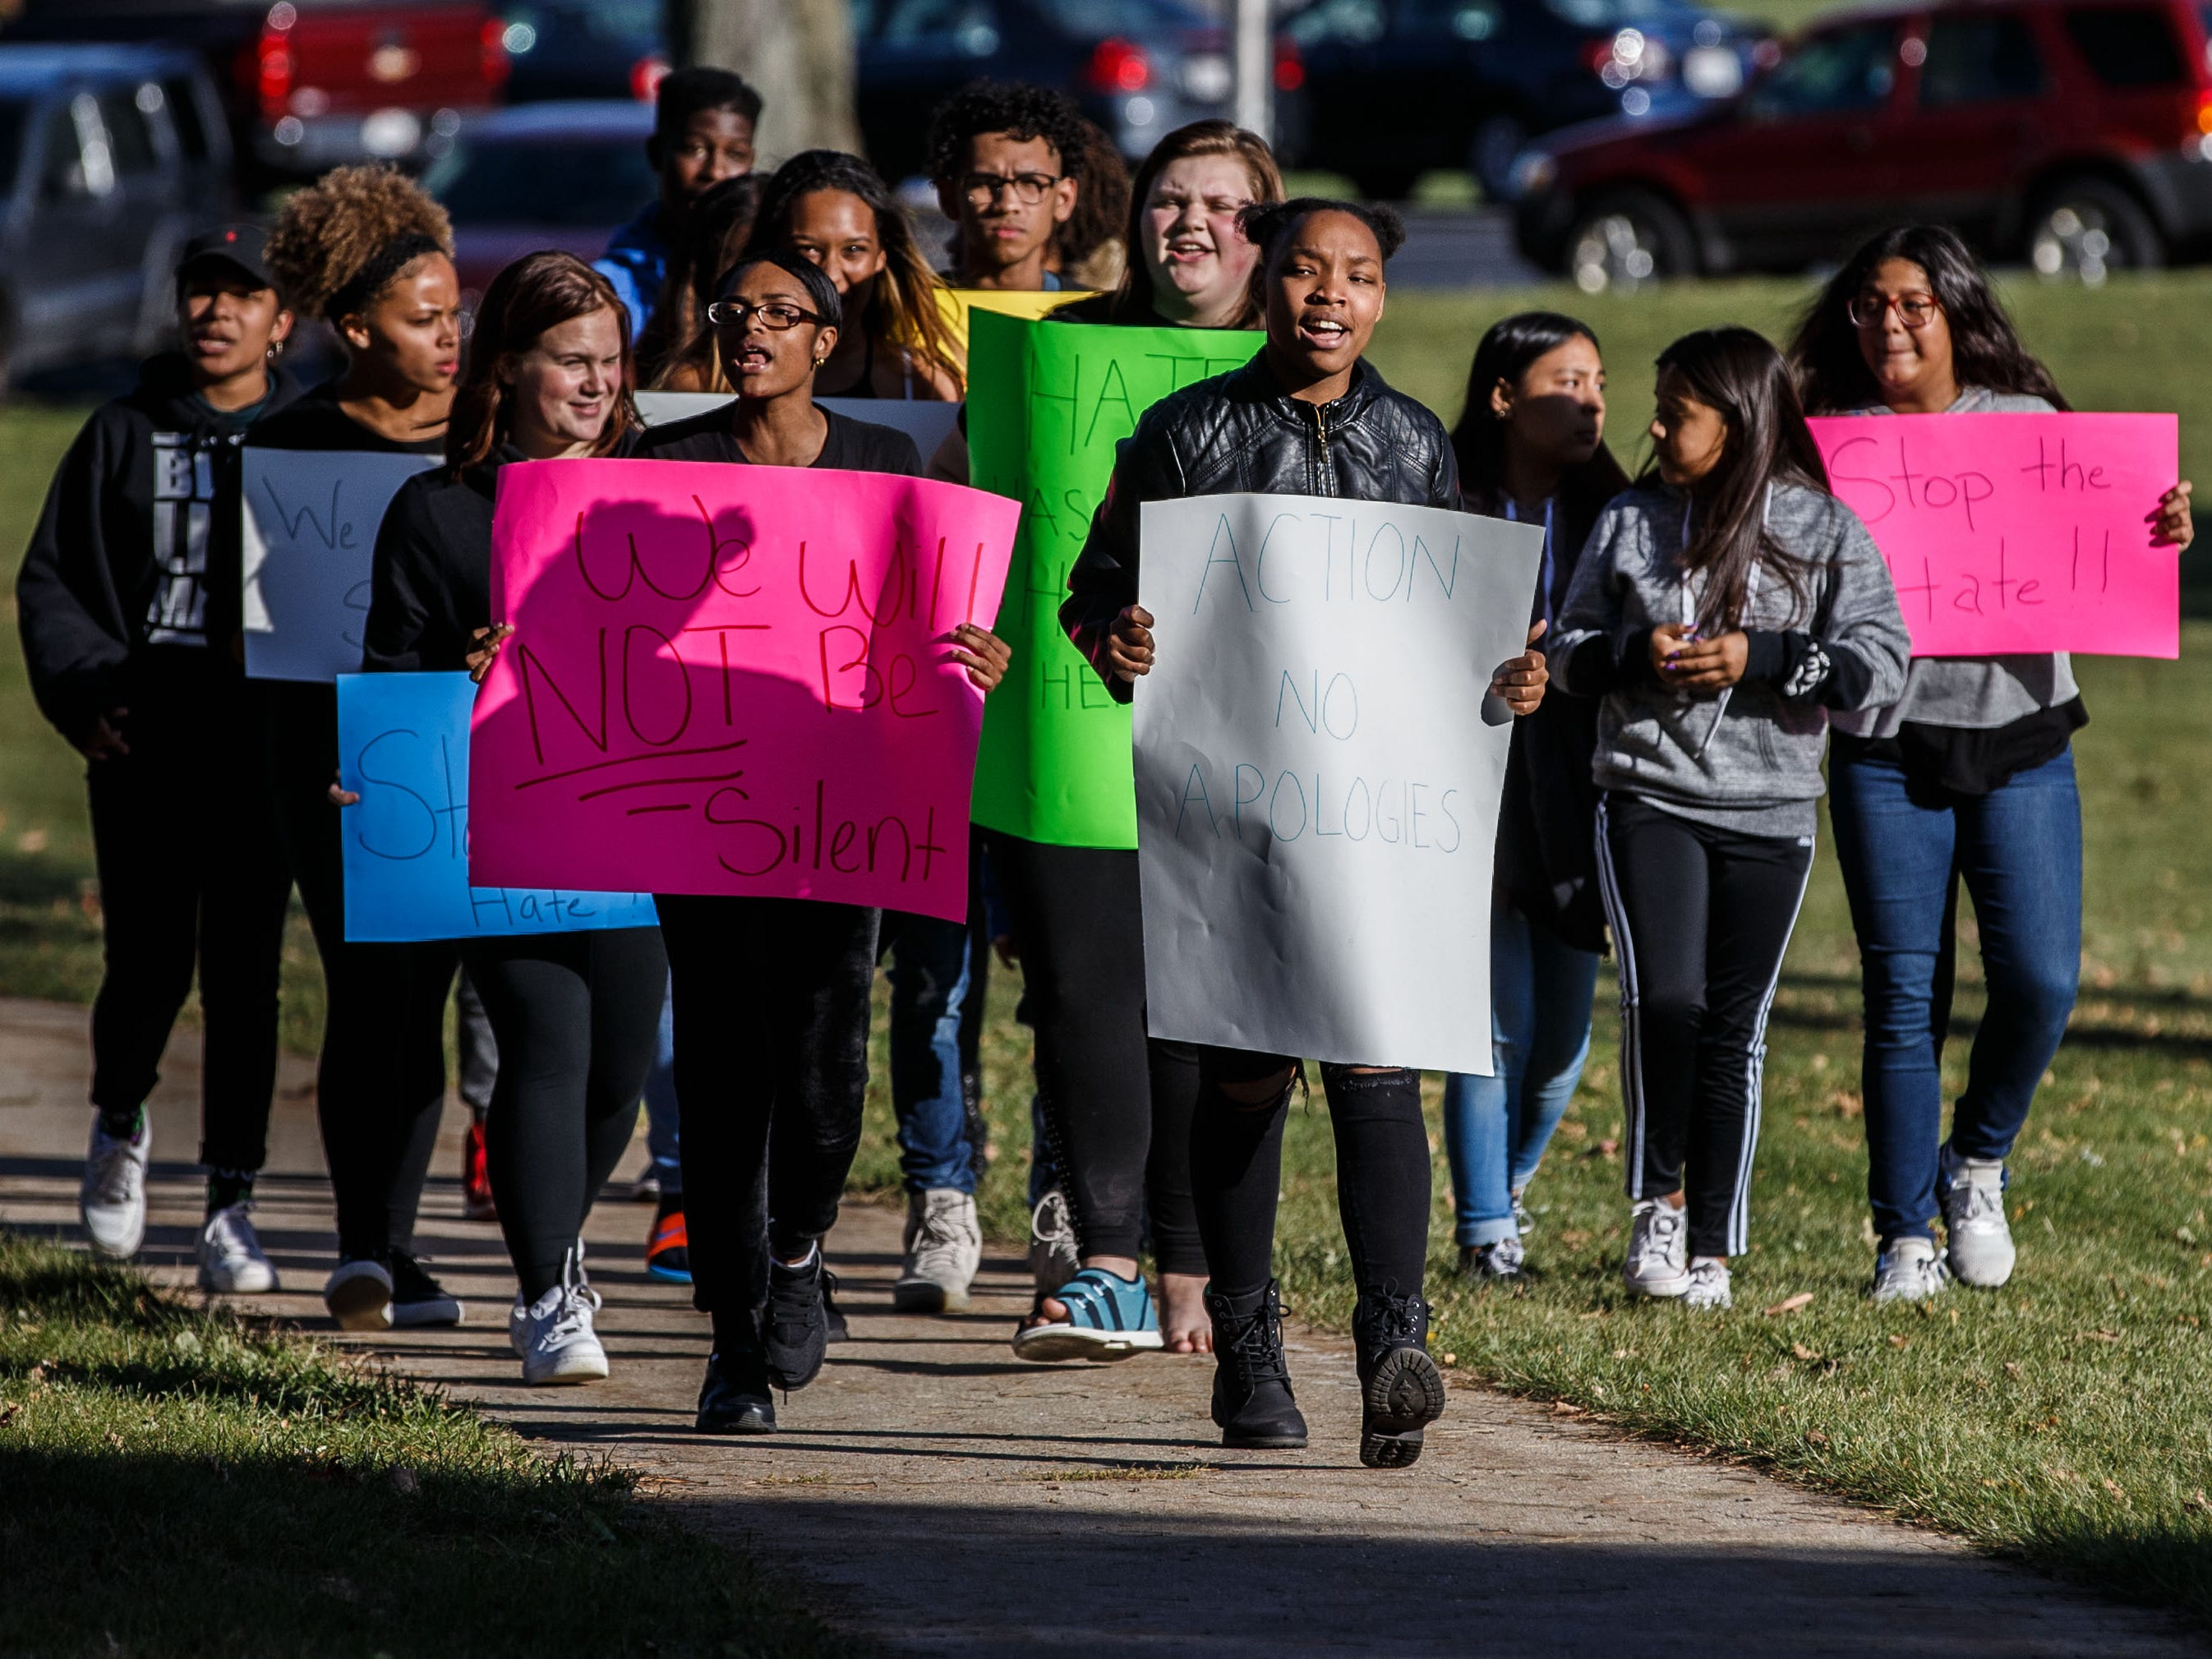 Chanese Knox (center) leads a student protest in front of Greendale High School on Monday, Oct. 22, 2018 in reaction to a racial-slur incident.